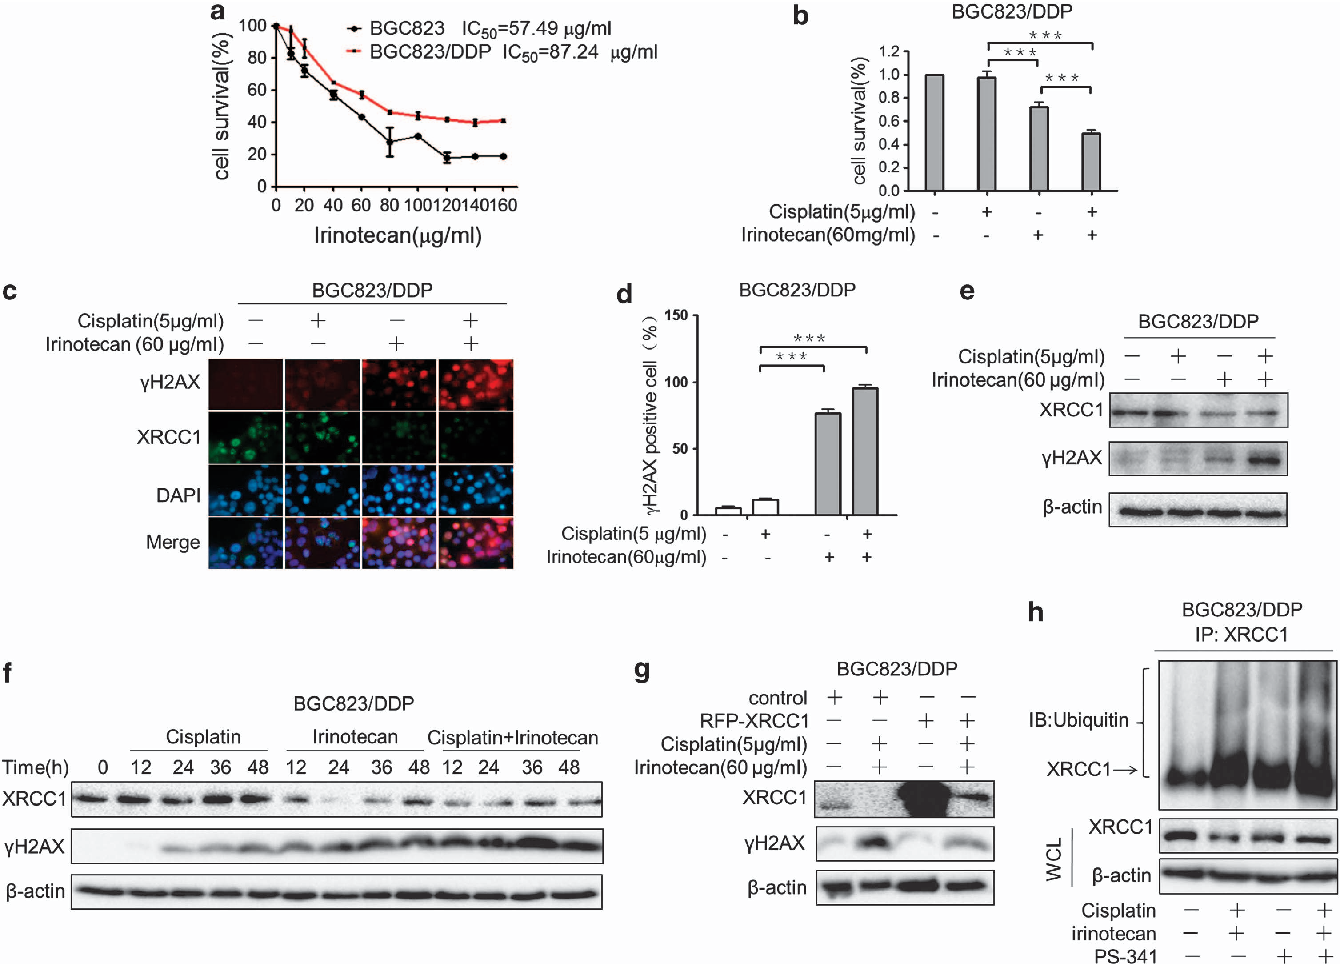 Figure 5 Irinotecan inhibits the expression of XRCC1 and enhances the sensitivity to cisplatin in resistant gastric cancer cells. (a) The viability of BGC823 and BGC823/ DDP cells exposed to irinotecan for 48 h was determined by CCK-8 assay. (b) The viability of BGC823/DDP cells exposed to 60mg/ml of irinotecan combined with 5 mg/ml of cisplatin for 48 h was determined by CCK-8 assay. (c) The BGC823/DDP cells exposed to 60 mg/ml of irinotecan combined with 5mg/ml of cisplatin for 24 h were analyzed with gH2AX staining. (d) Quantification of gH2AX foci-positive cells of BGC823/DDP cells exposed to 60 mg/ml of irinotecan combined with 5 mg/ml of cisplatin. (e) Western blotting determined the levels of XRCC1 and gH2AX in BGC823/DDP cells exposed to 60 mg/ml of irinotecan combined with 5 mg/ml cisplatin for 24 h. (f) Western blotting determined the levels of XRCC1 and gH2AX in BGC823/DDP cells exposed to 60 mg/ml of irinotecan combined with 5mg/ml of cisplatin for 0, 12, 24, 24, 36, and 48 h. (g) Western blotting determined the level of XRCC1 and gH2AX in BGC823/DDP cells transfected with RFP-XRCC1. (h) The BGC823/DDP cells treated with 60mg/ml of irinotecan combined with 5mg/ml of cisplatin for 24 h then treated with 50 mM PS-341 for 6 h. Western blotting was performed to confirm the levels of XRCC1 and immunoprecipitation was used to show the ubiquitination of XRCC1. Results are representative of at least three experiments and shown as the mean±S.D. ***Po0.001